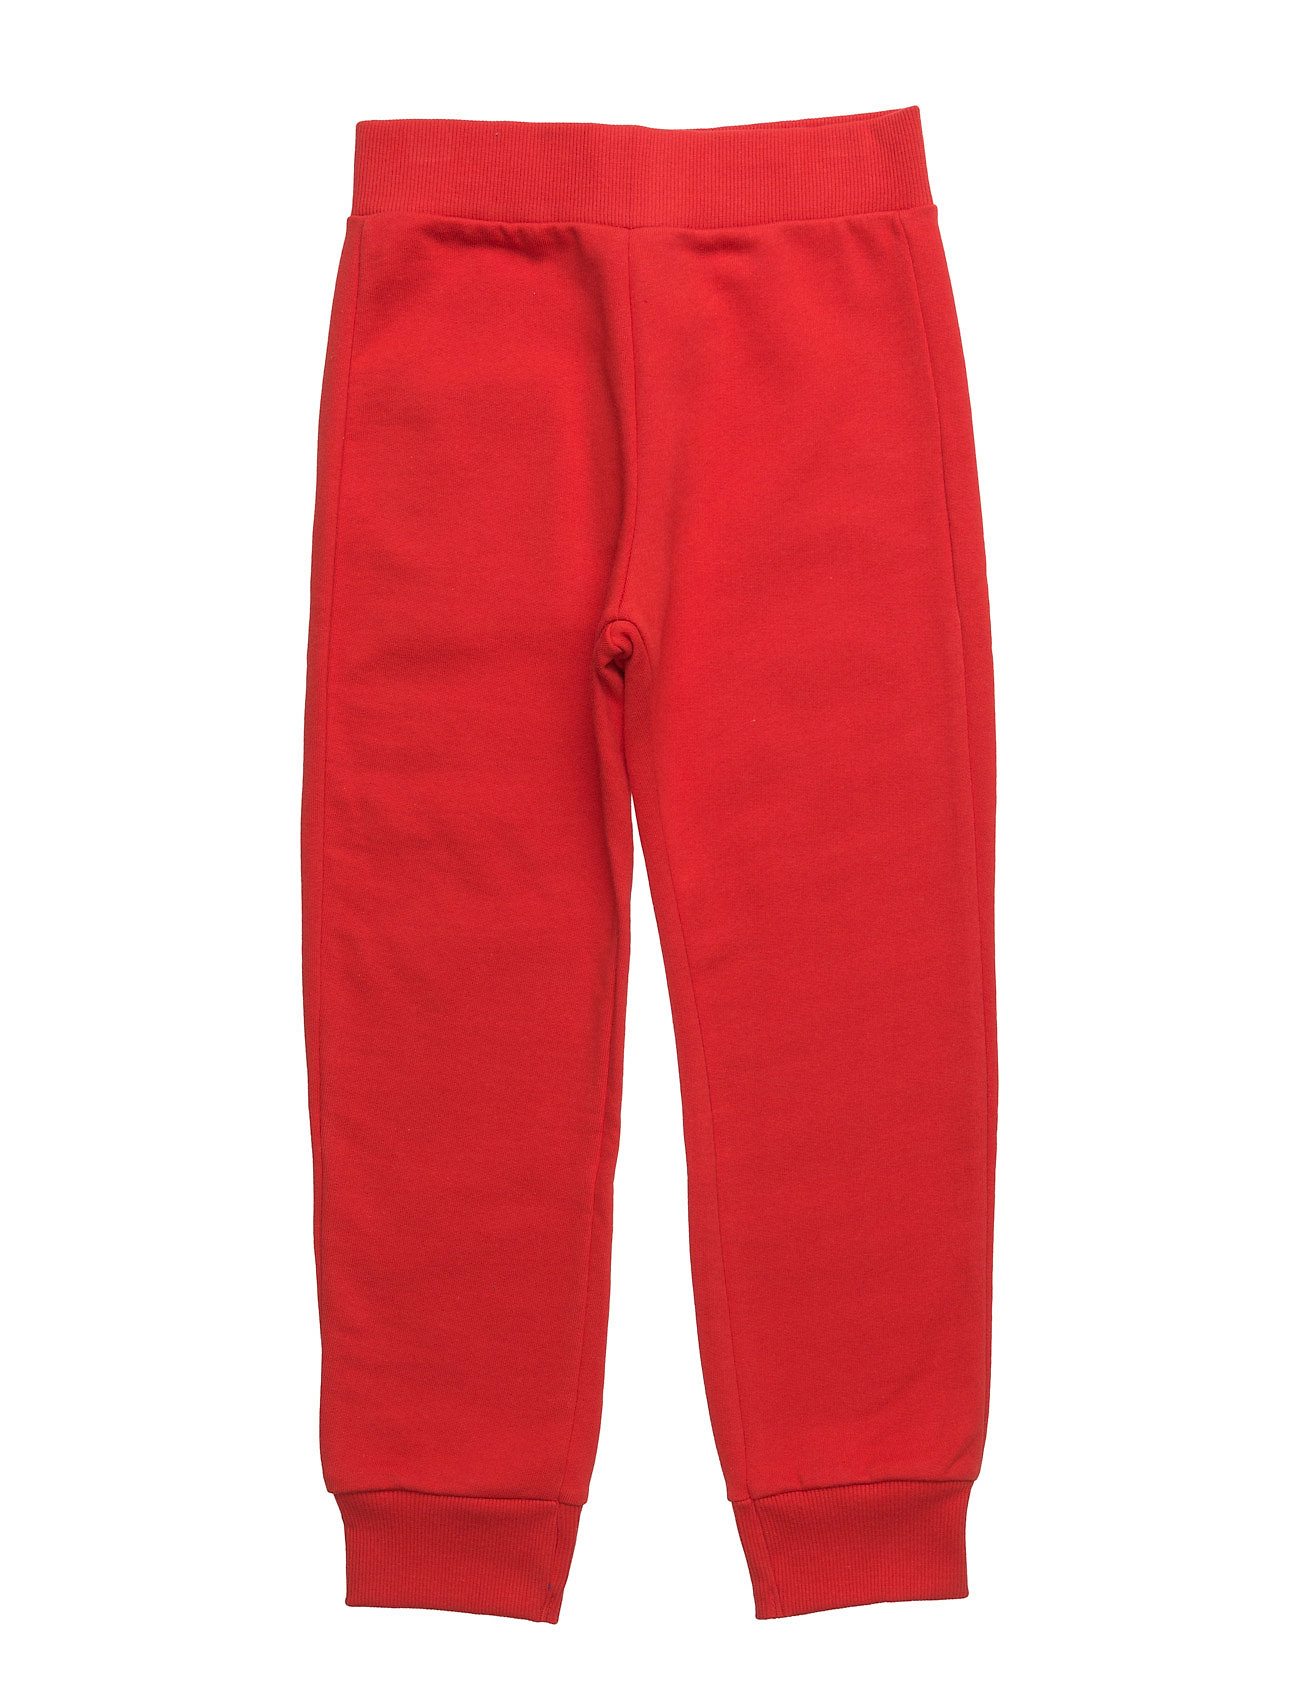 Trousers United Colors of Benetton  til Børn i